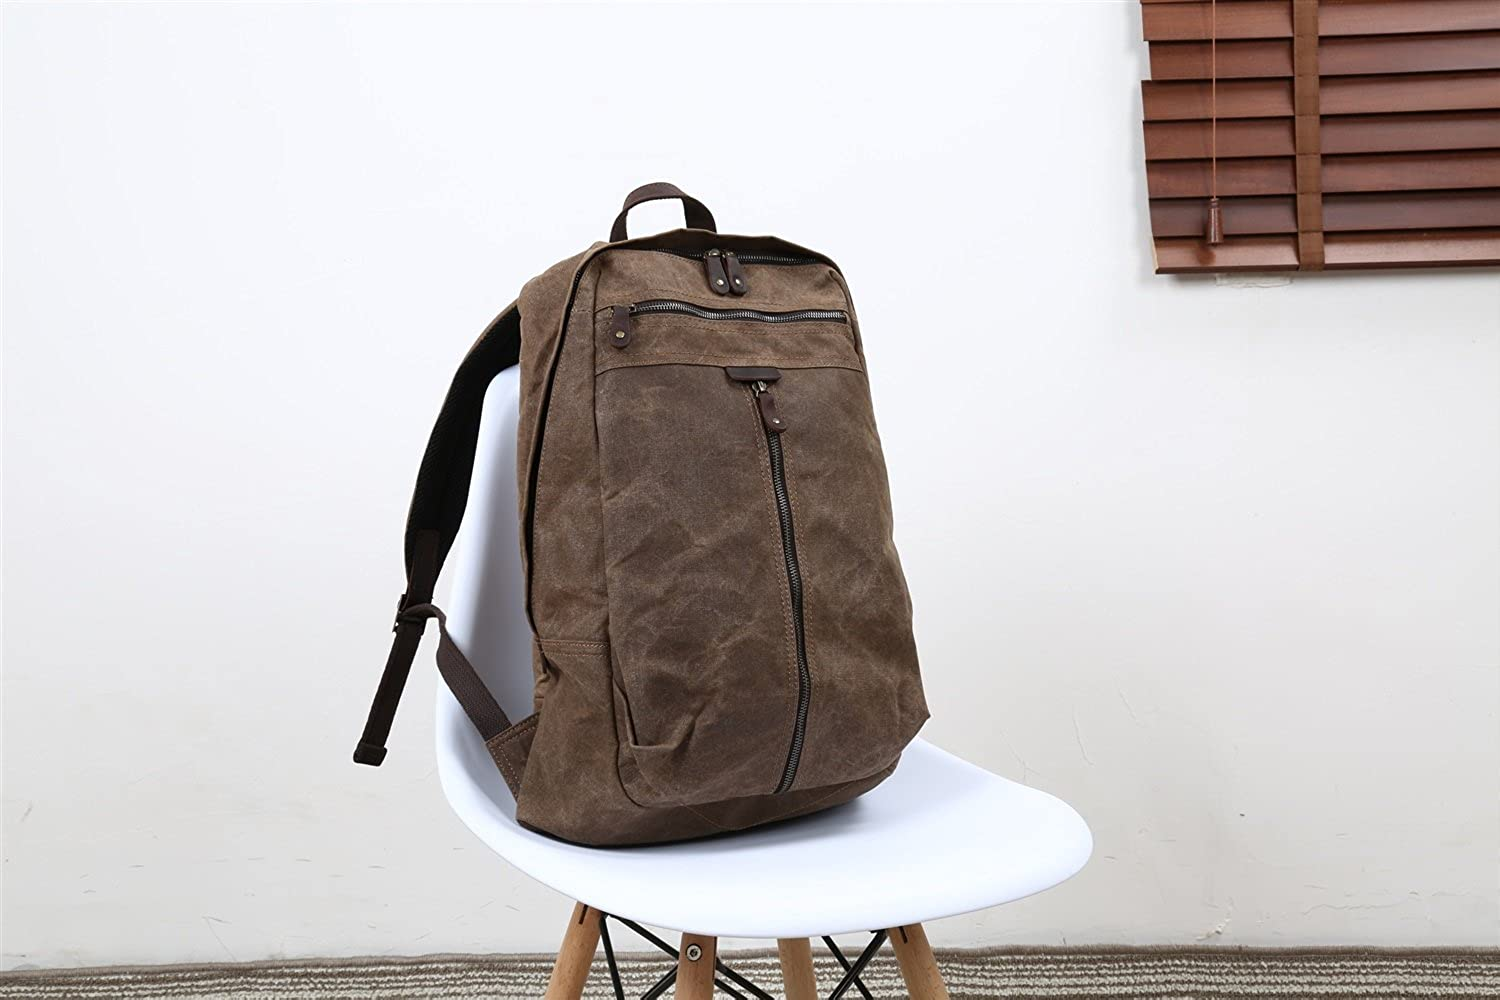 Men's Shoulder Bag Oil Wax Canvas Bag Retro Crazy Horse Skin Backpack Batik Canvas Waterproof Backpack (color   Brown, Size   M)